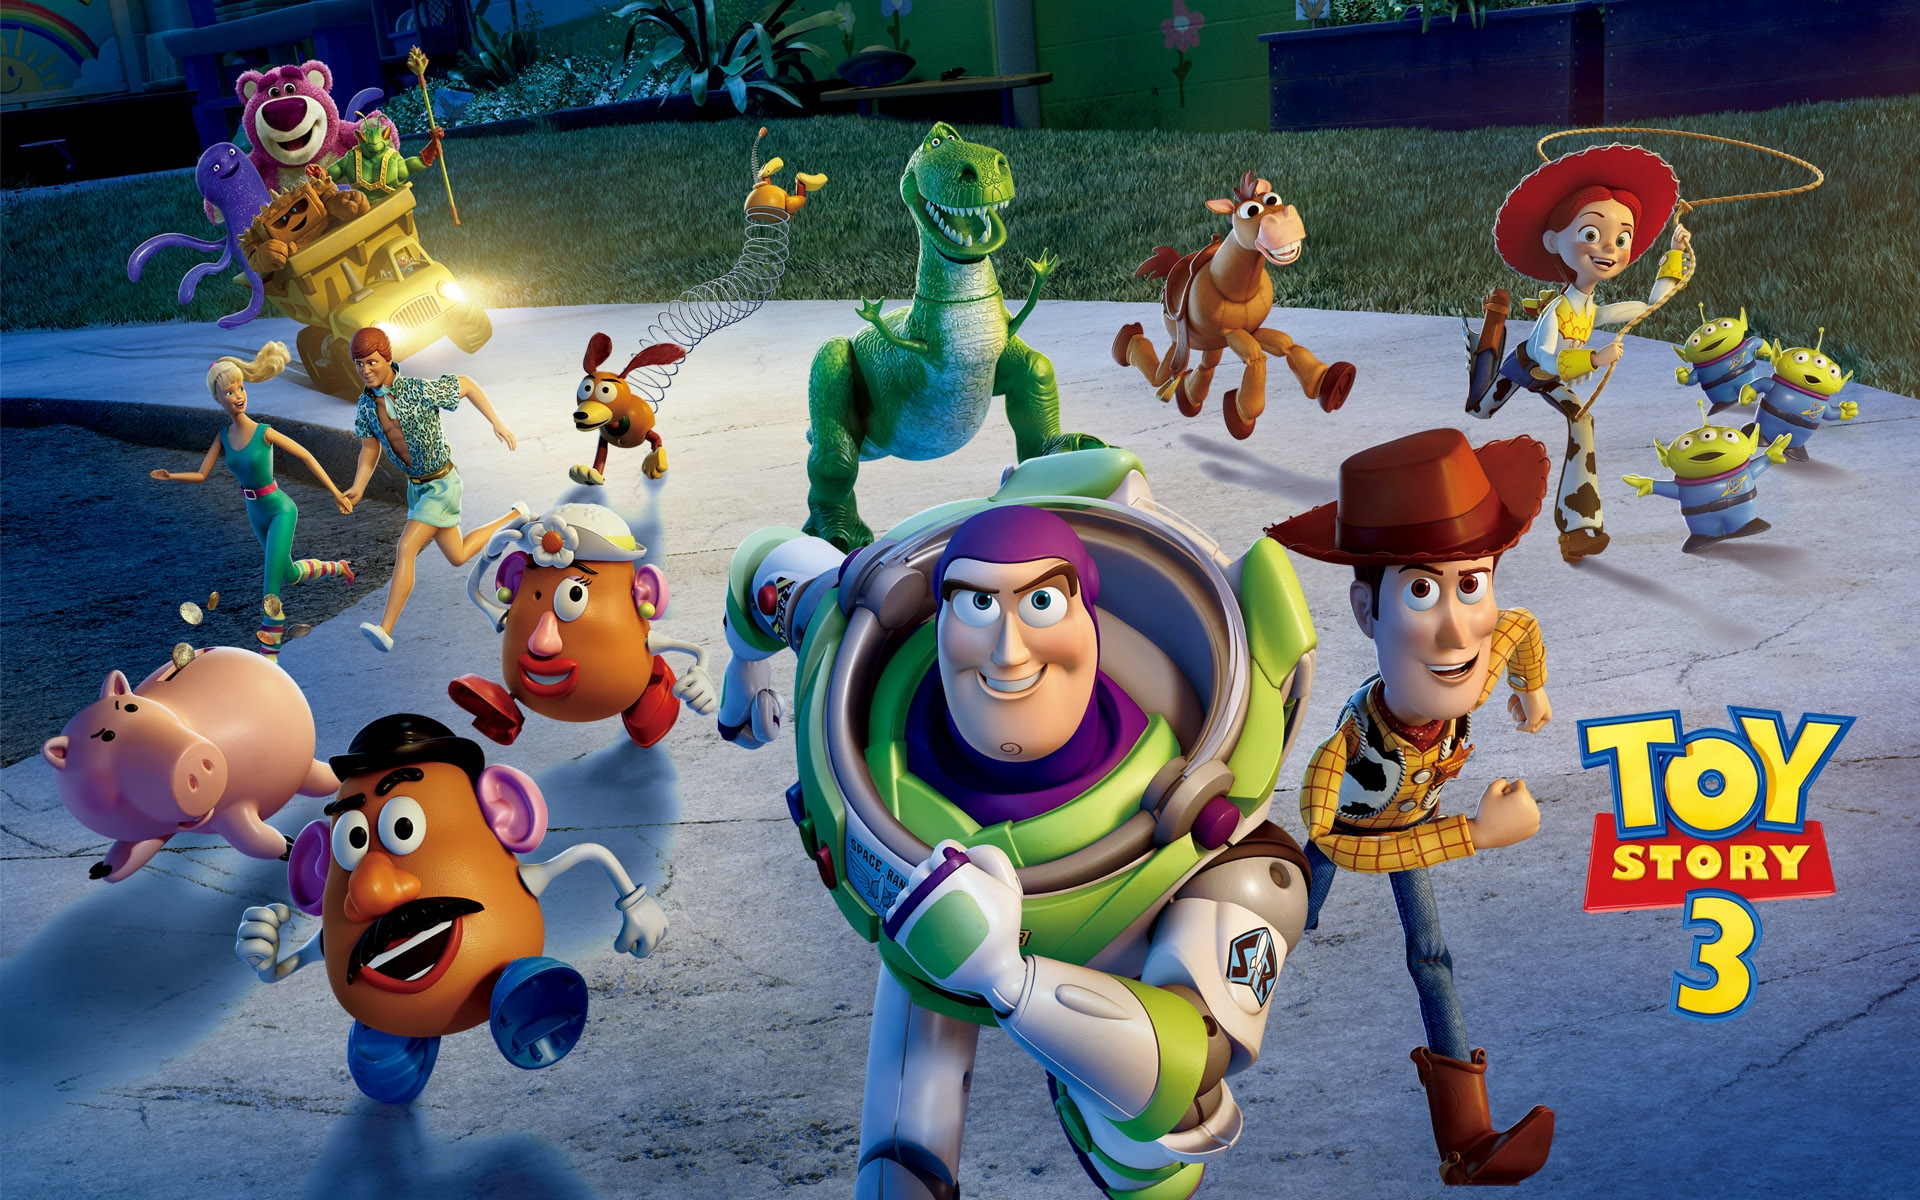 toy story 3 review The very idea of toy story 3 might seem like a bold move, but it's a move that results in an absolutely thrilling adventure and a joyous payoff that reminds us all that there can be catharsis in letting go of one's past.